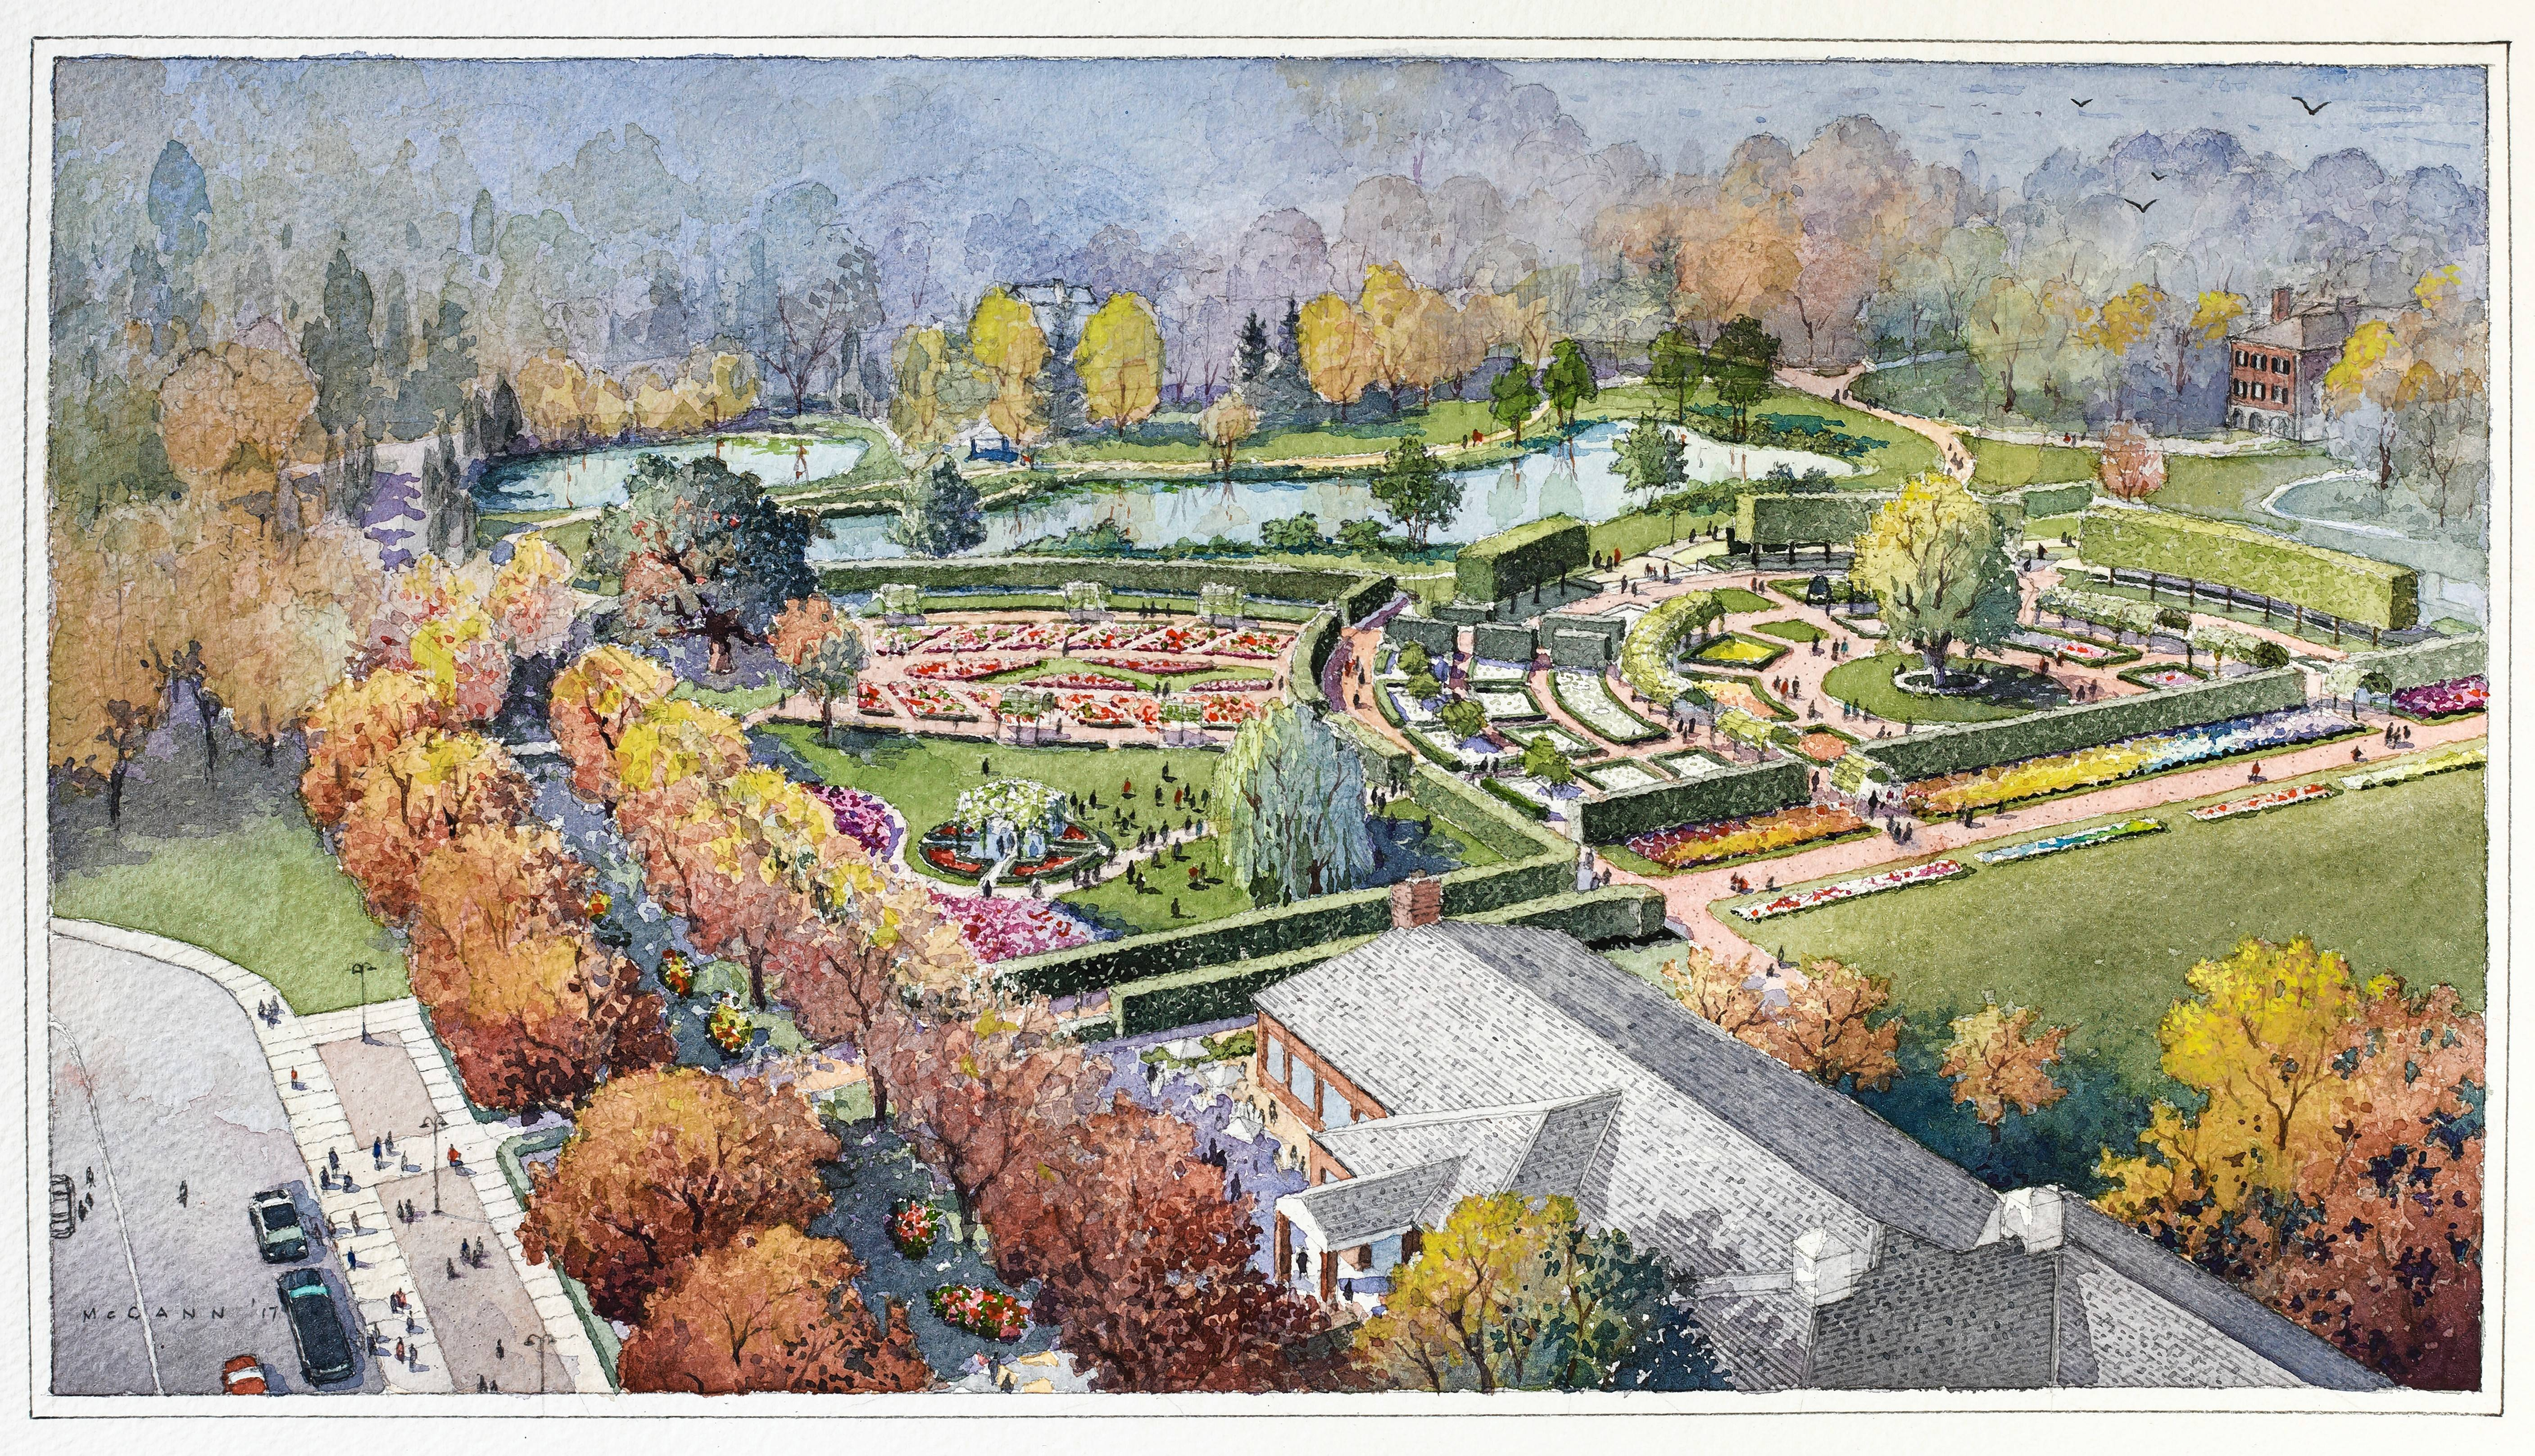 The five-year Project New Leaf will create new gardens and update the grounds of Cantigny Park in Wheaton.